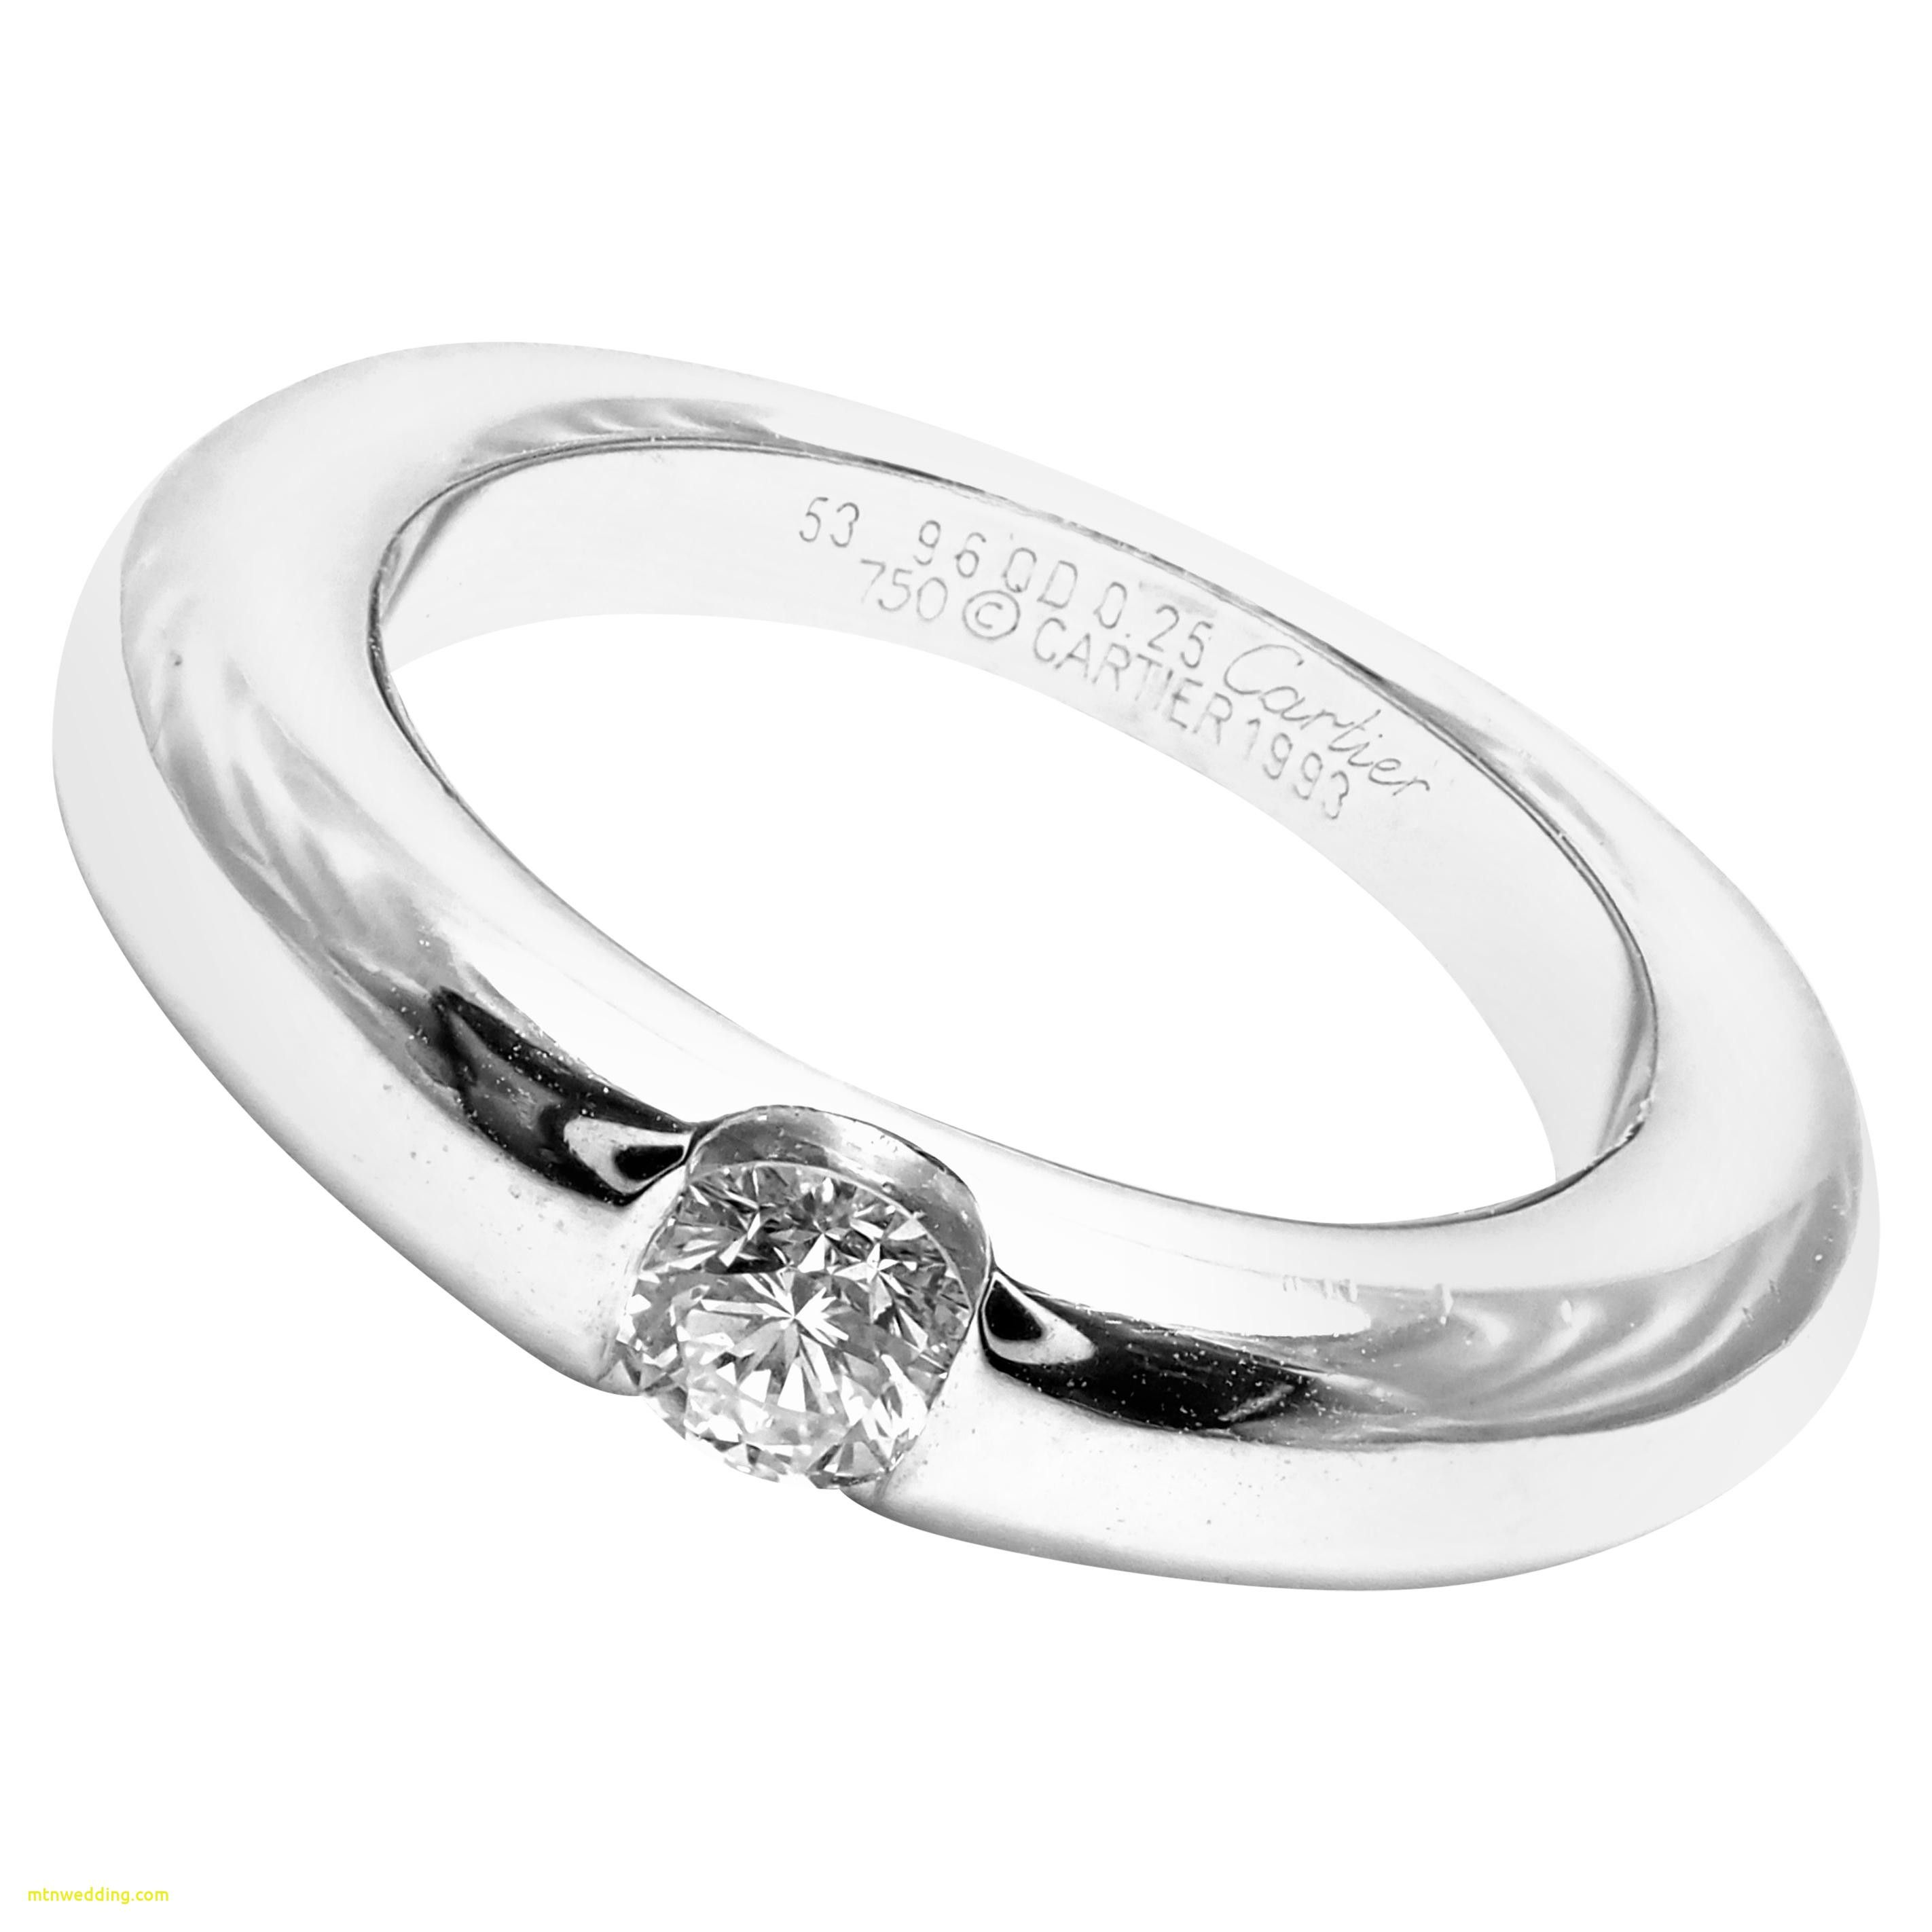 Unique Womens White Gold Diamond Wedding Rings Check More At Https Mtnwedding Com Wedding Ring Womens White Gold Diamond Wedding Rings